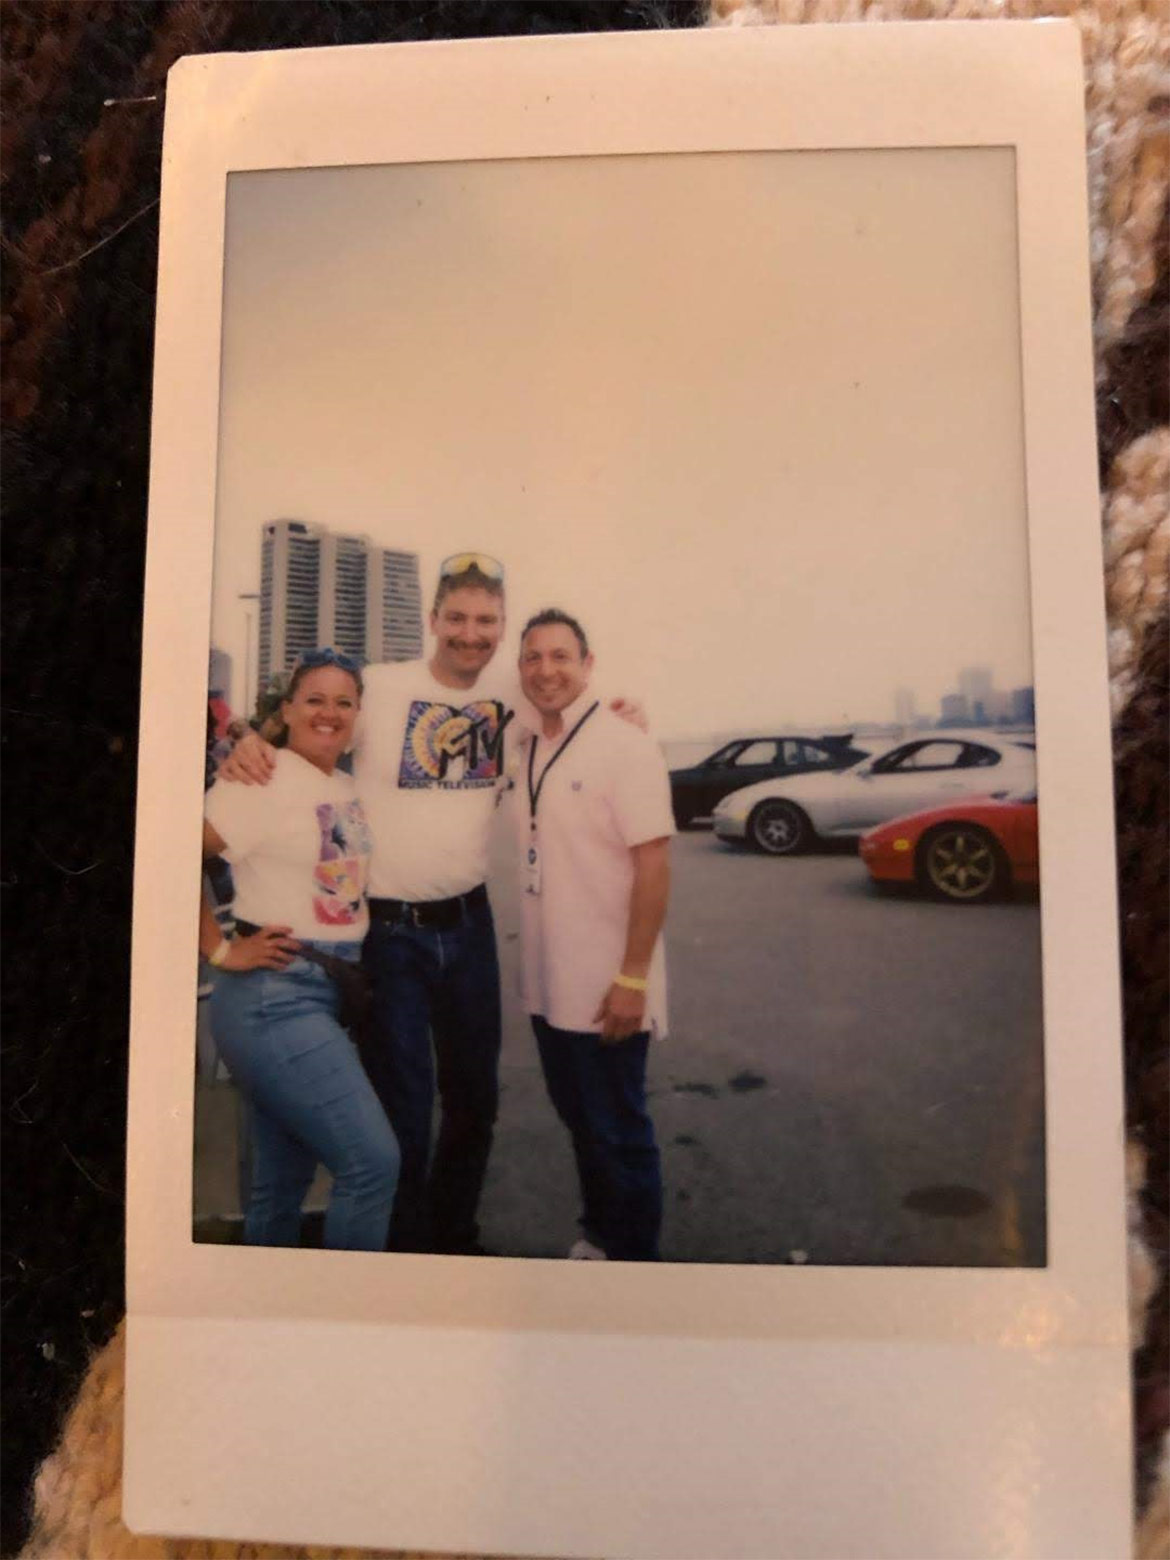 photo of a poloroid of two men and one woman